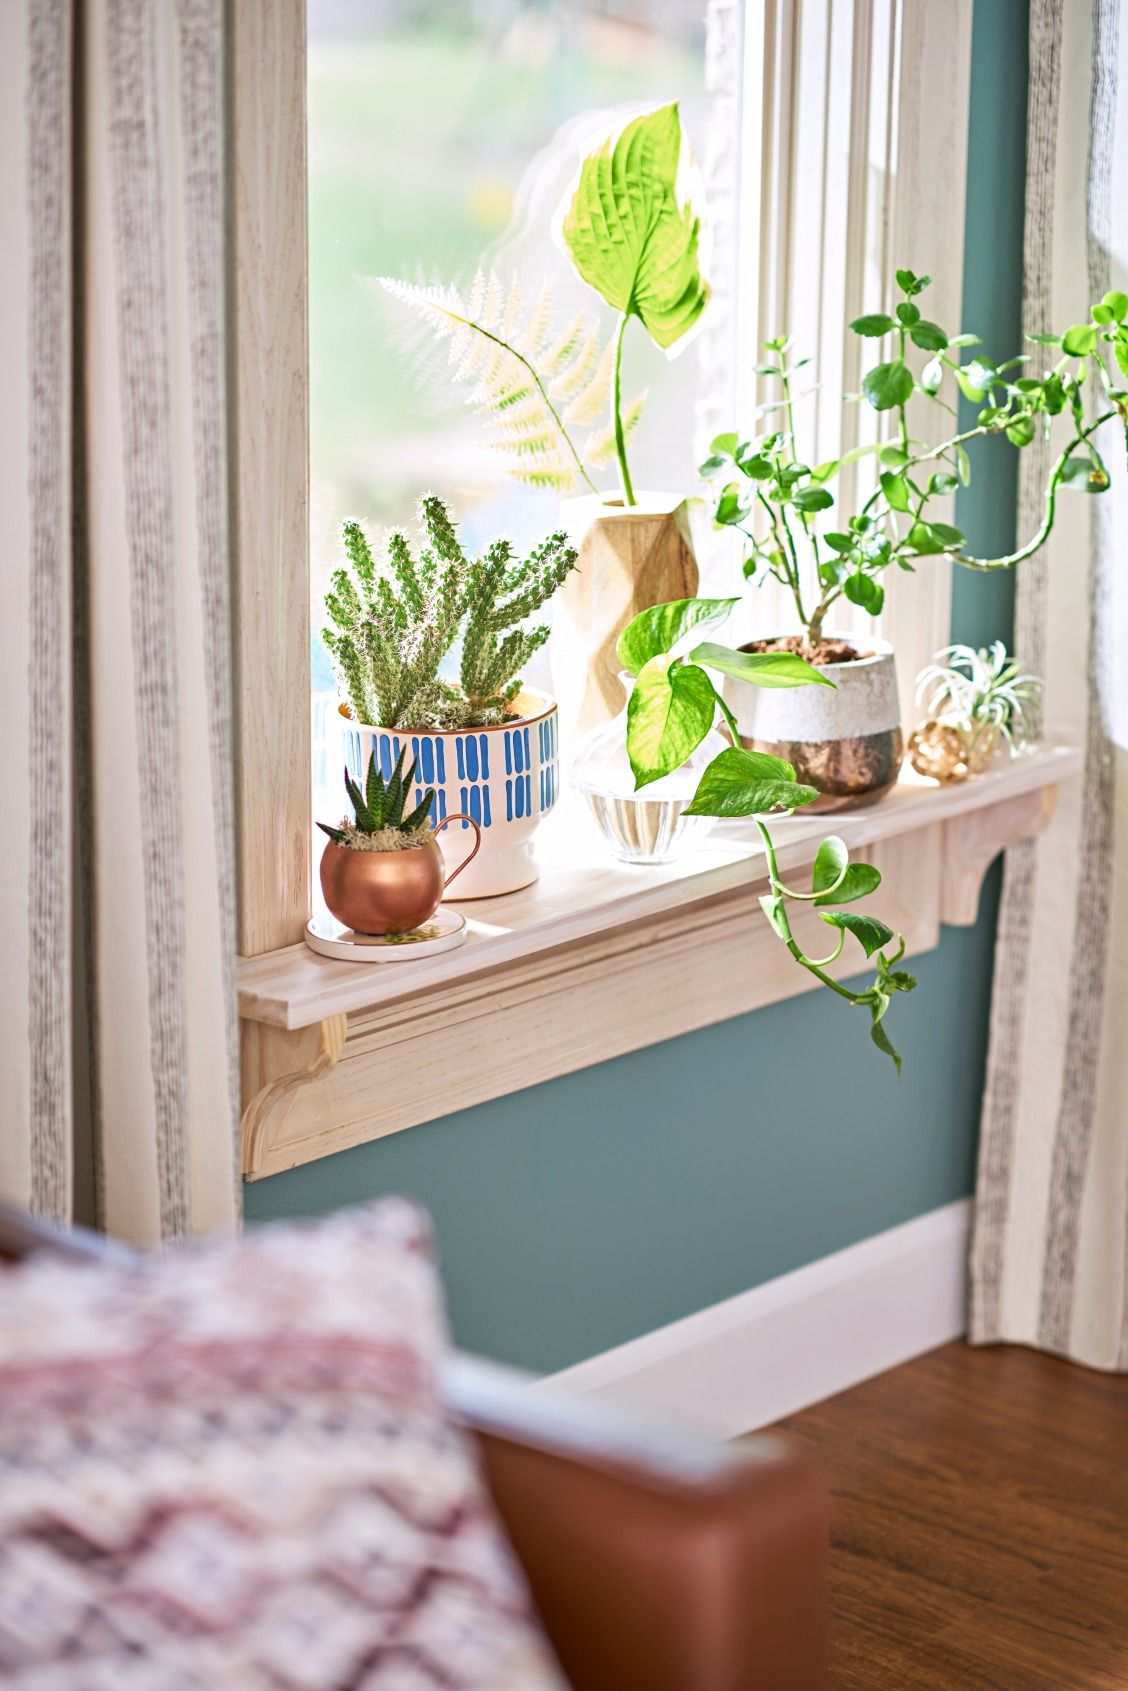 A Windowsill Is The Perfect Spot For A Mini Garde